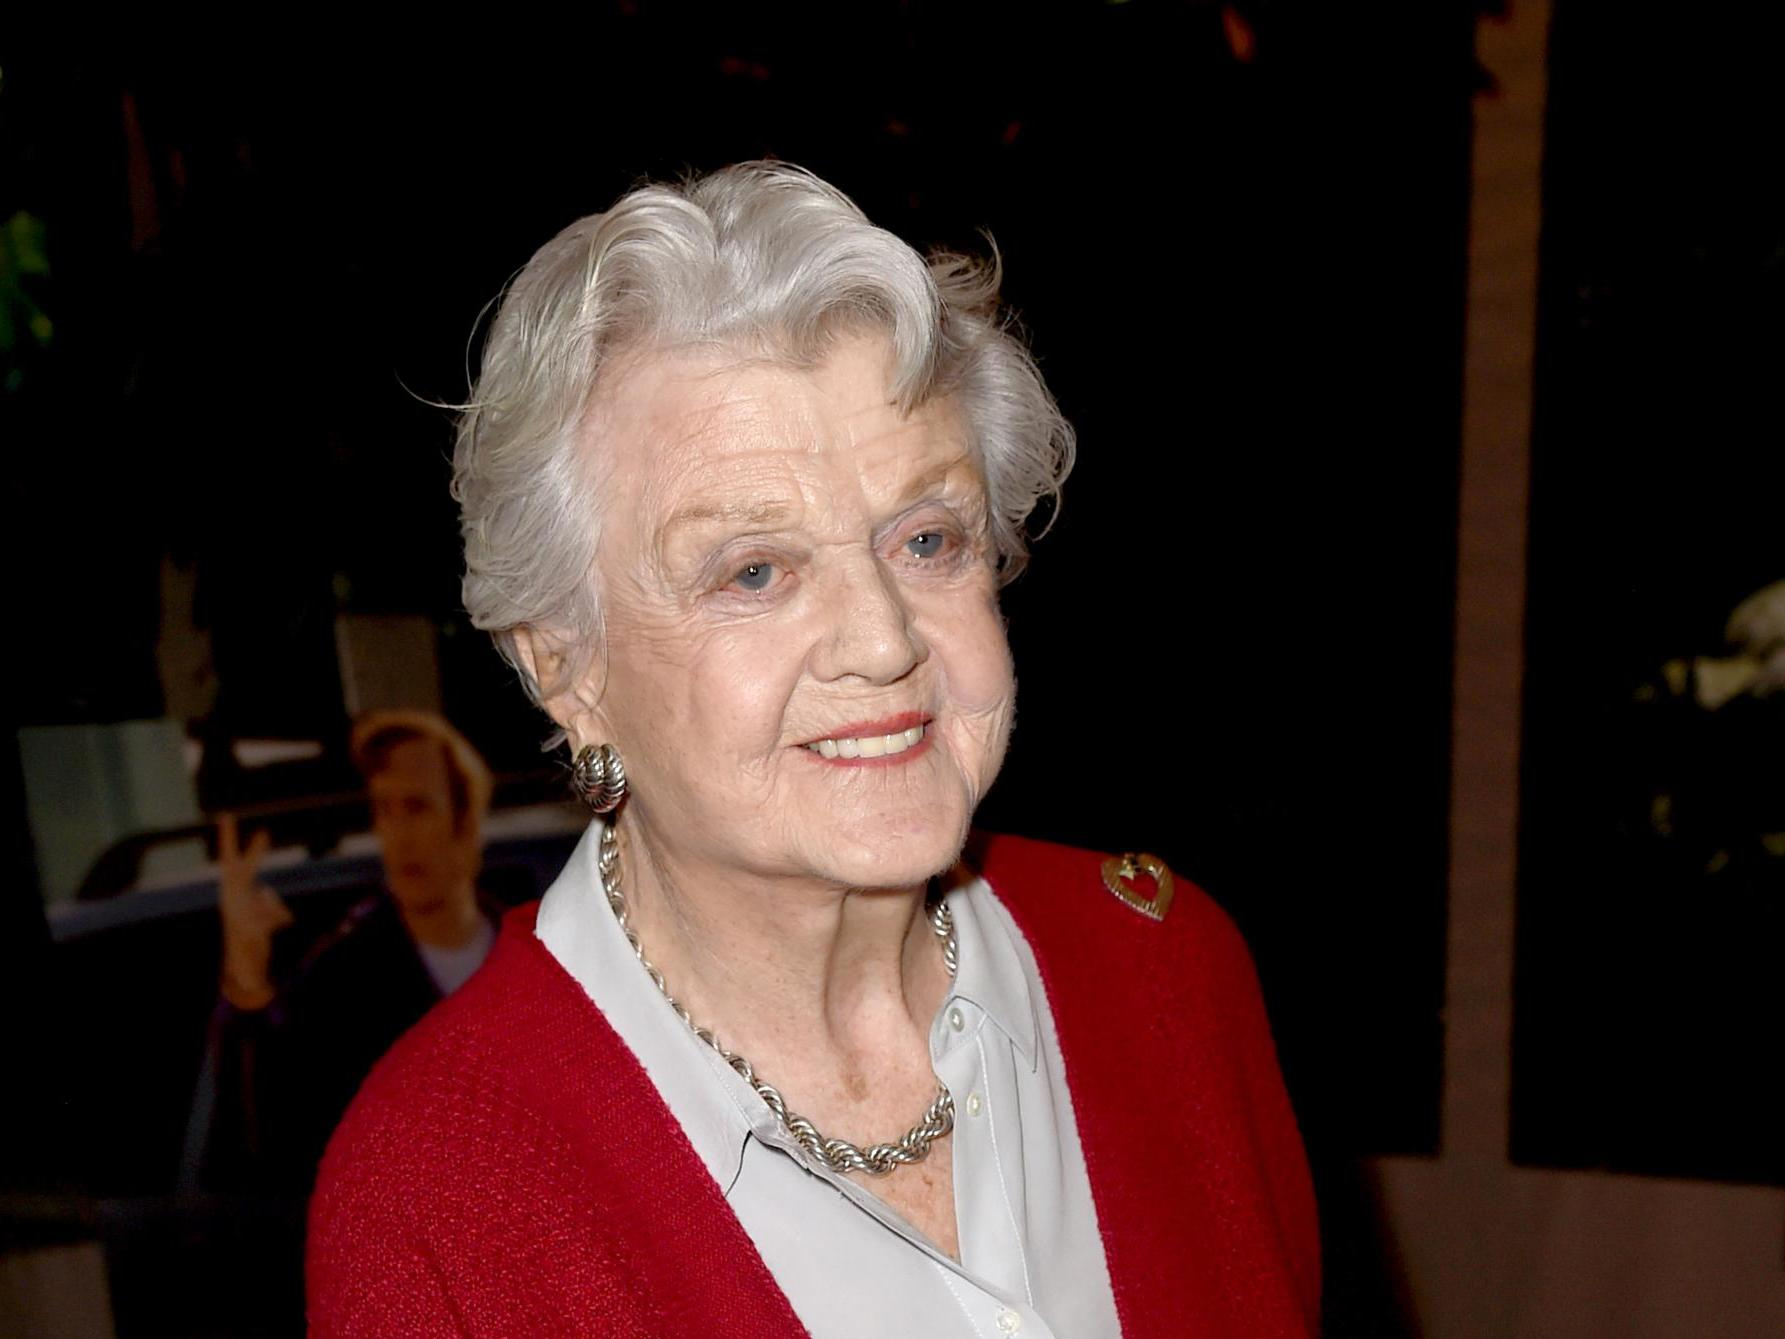 Angela Lansbury 'thrilled to be part of reggae' after hearing 1990s hit Murder She Wrote for first time